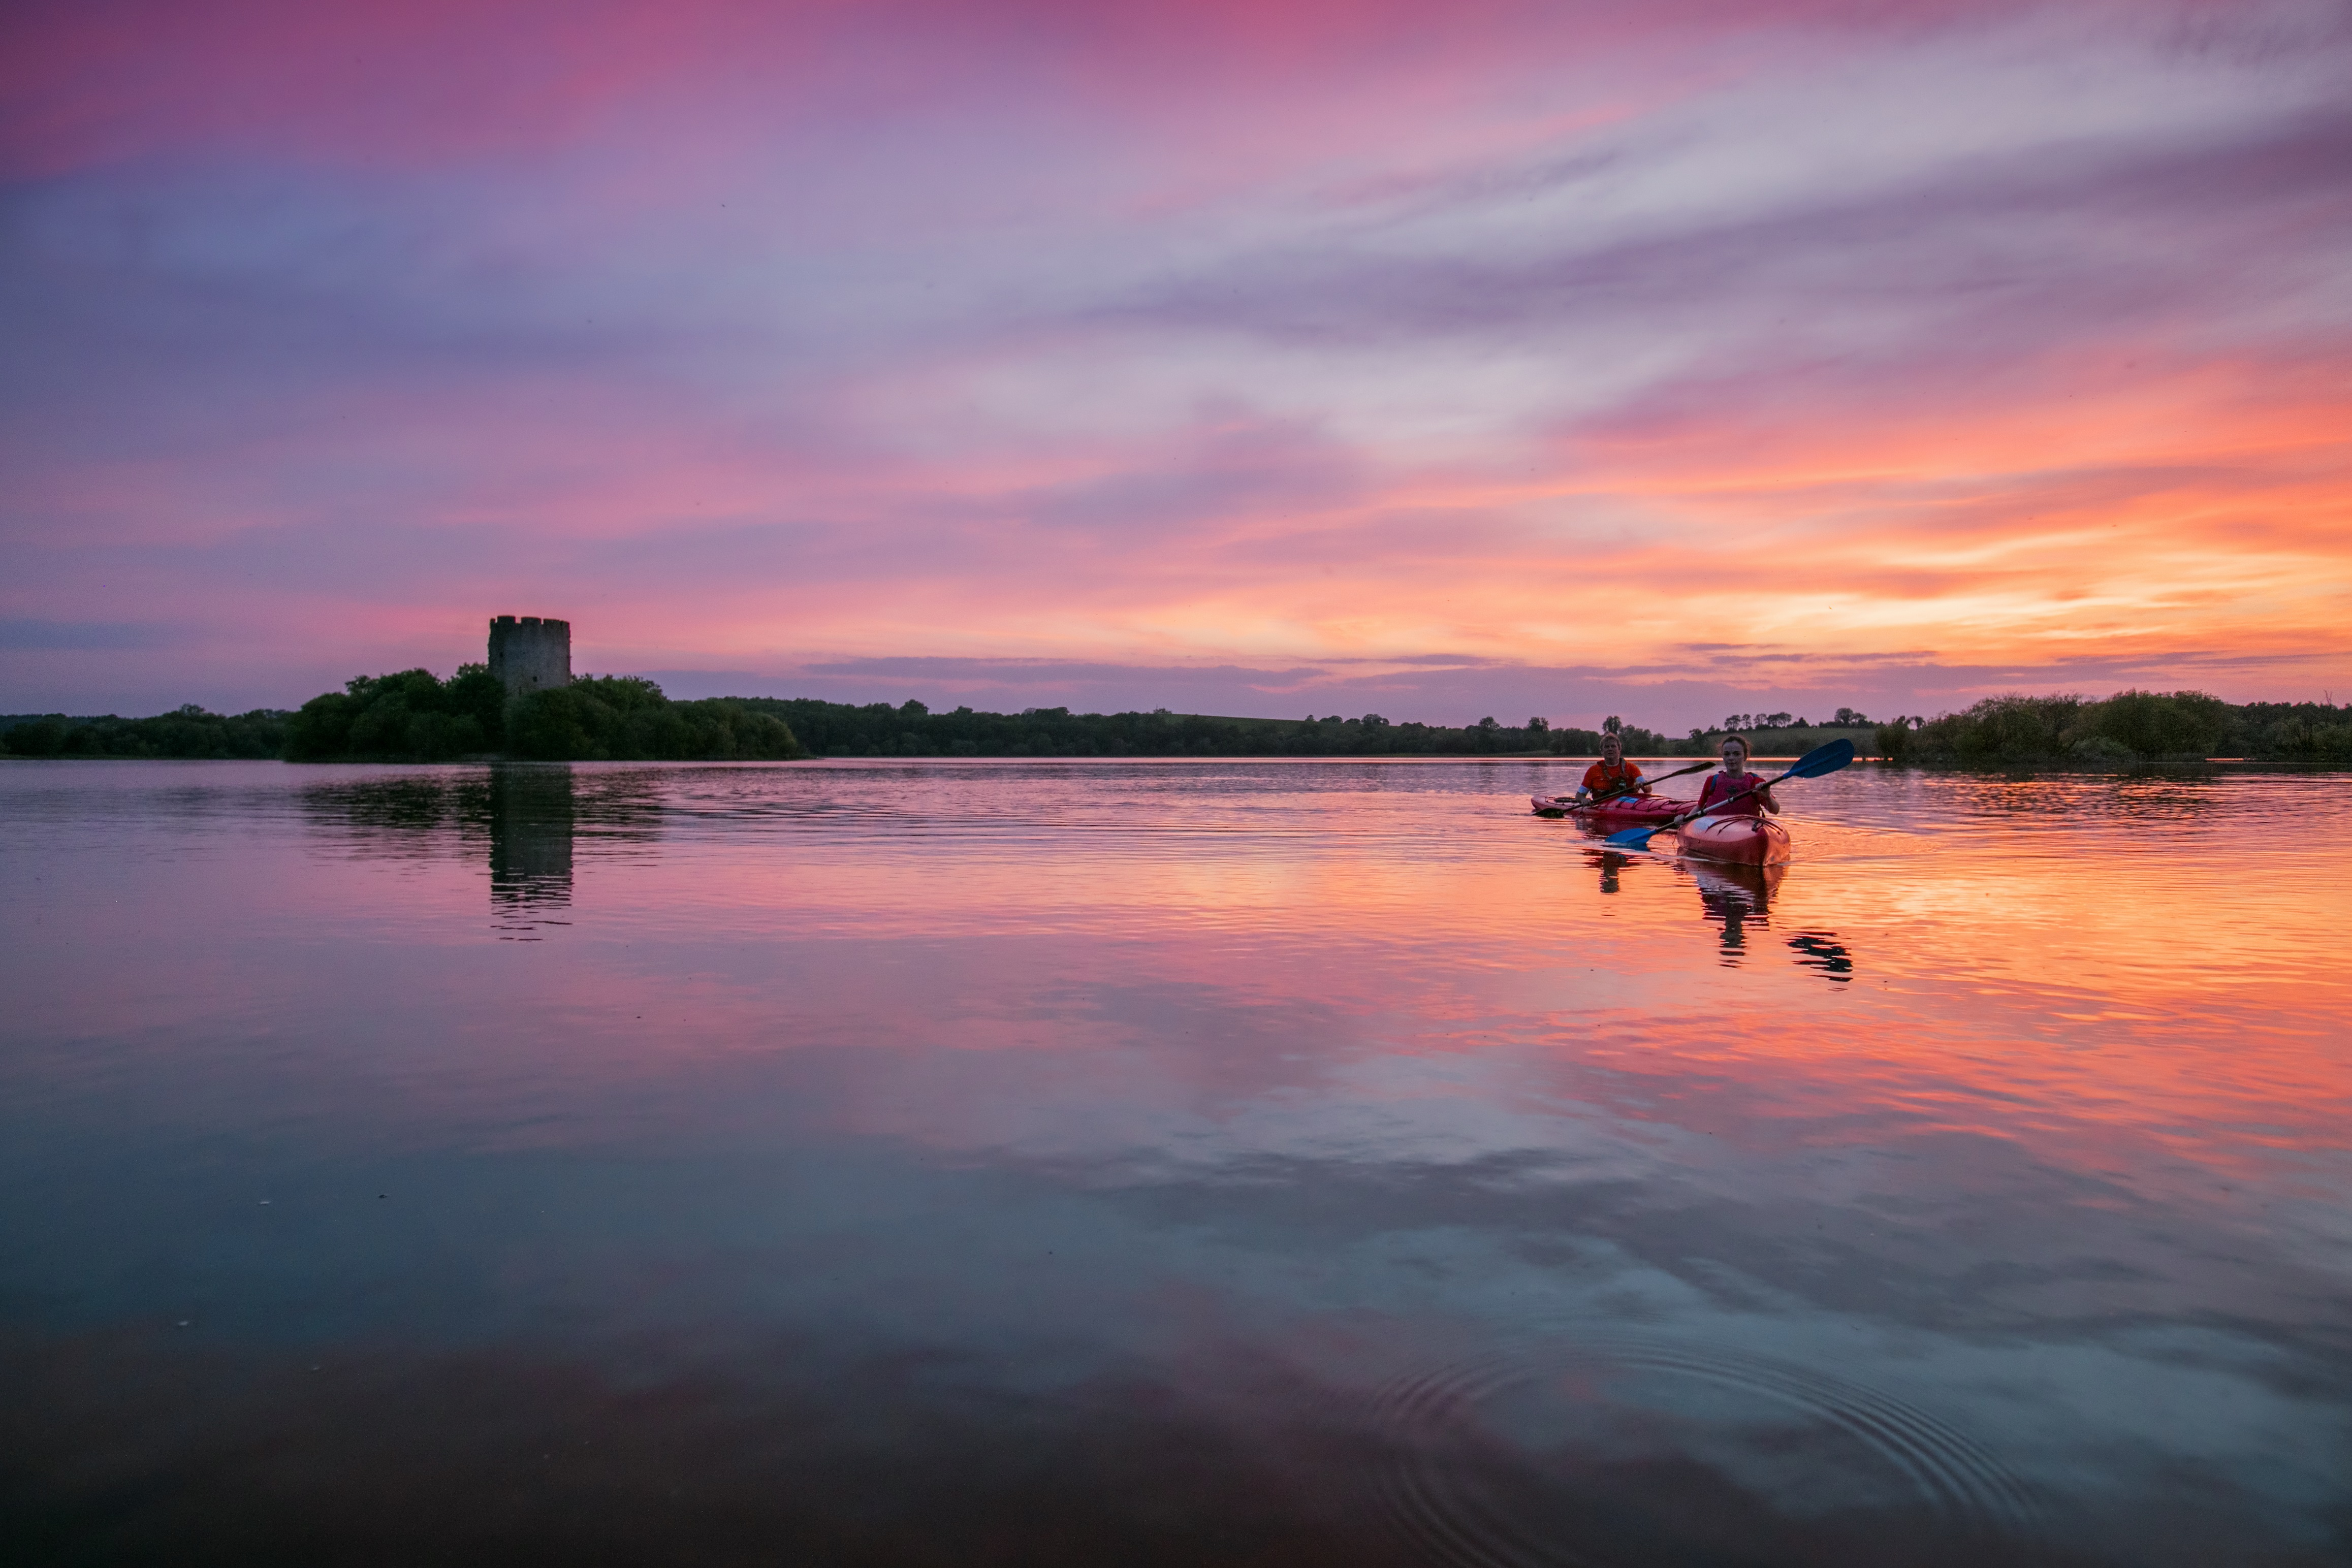 Canoeing near Cloughoughter Castle on Lough Oughter